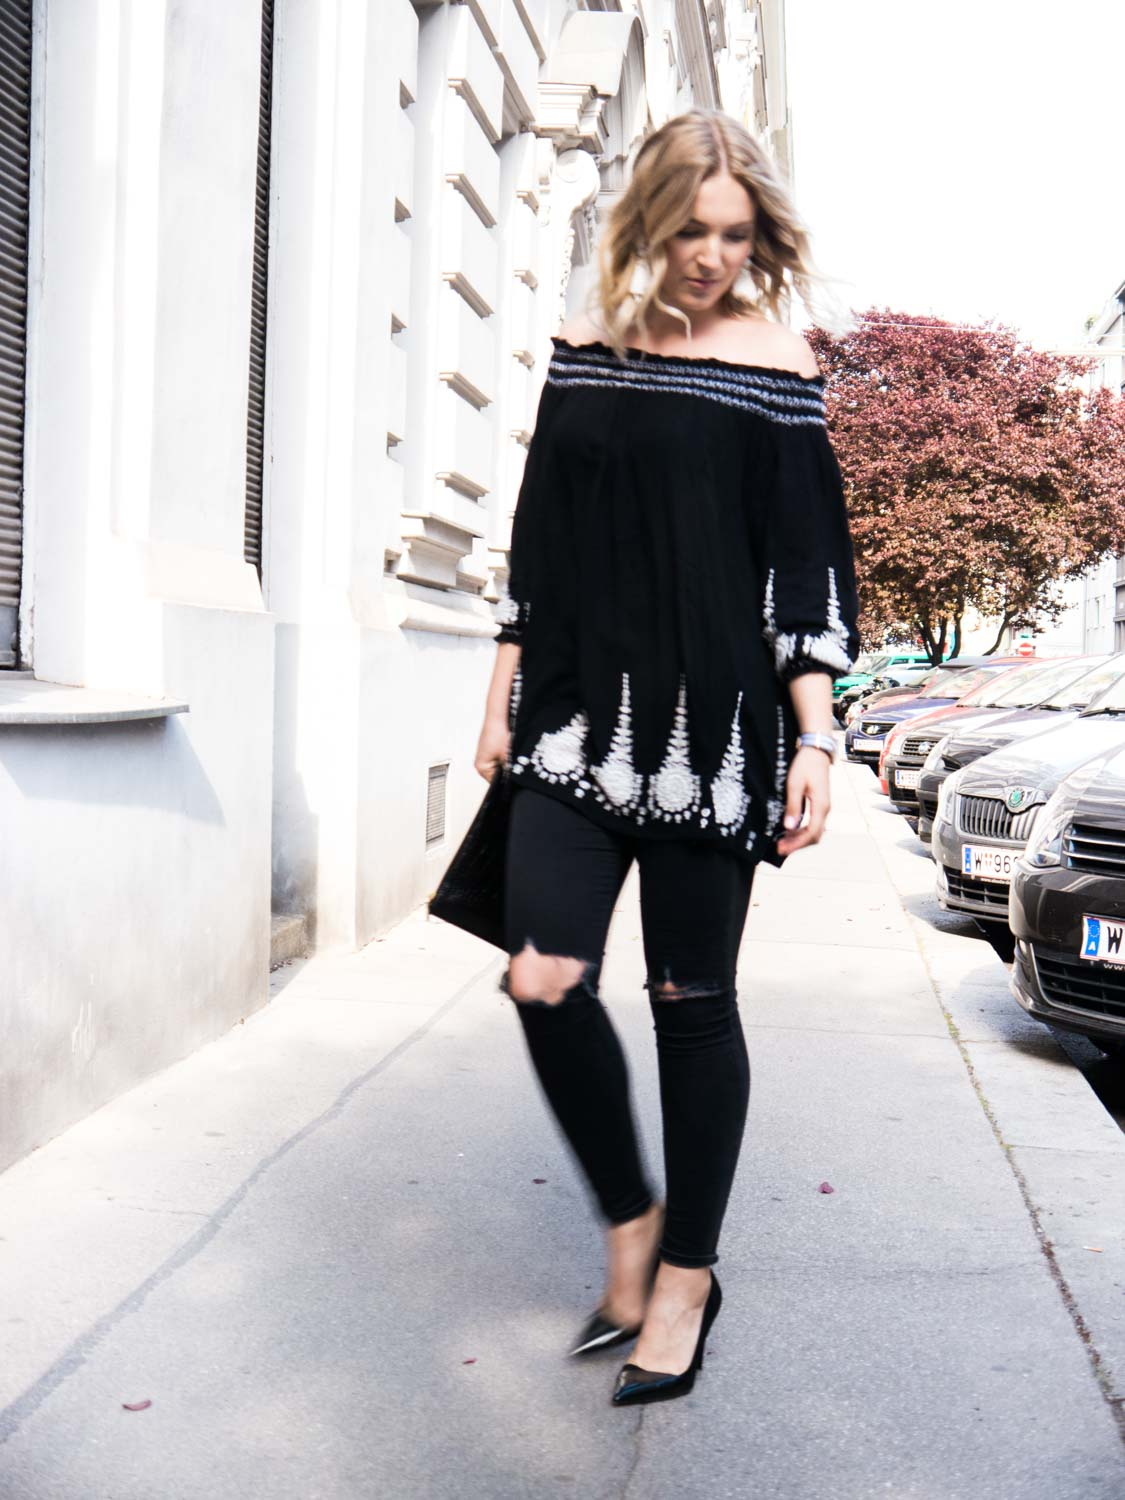 Blog-Your-Style-Outfit-Fashionshooting-Streetstyle-Off-Shoulder-Trend-Fashionblog-Austria-Giveherglitter-ripped-Jeans-9